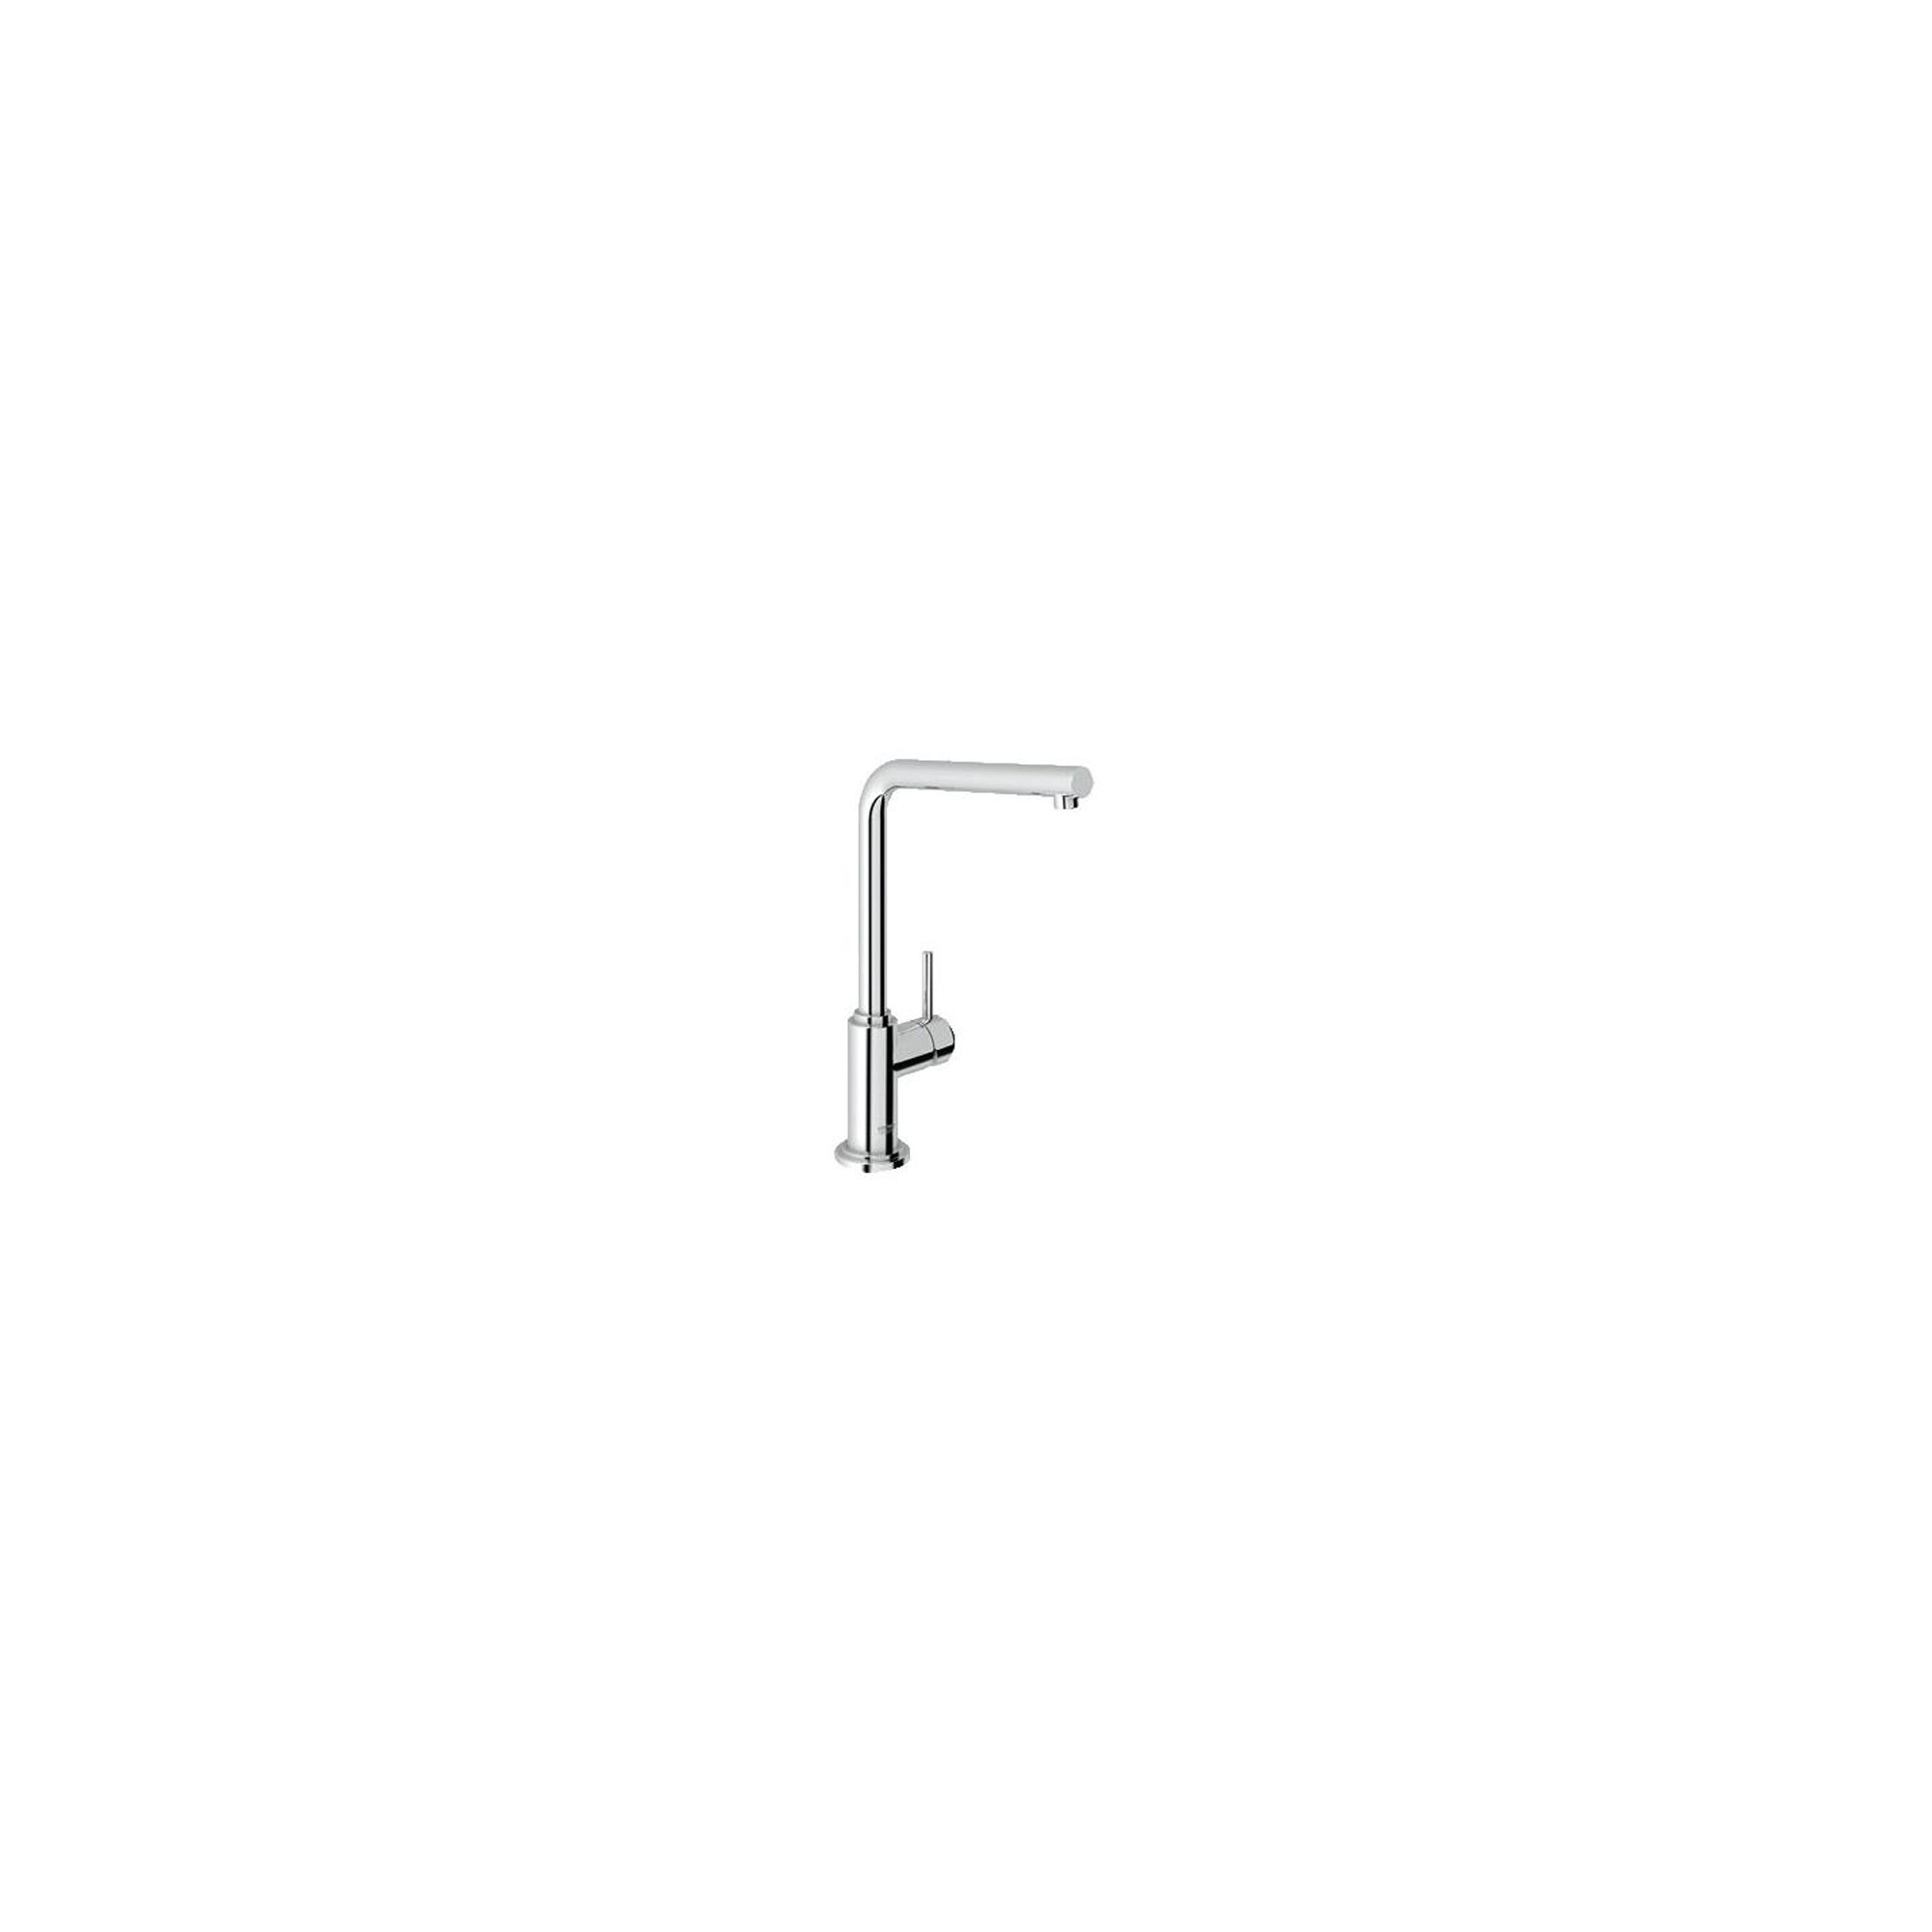 Grohe Atrio One Mono Sink Mixer Tap, Single Handle, Chrome at Tesco Direct